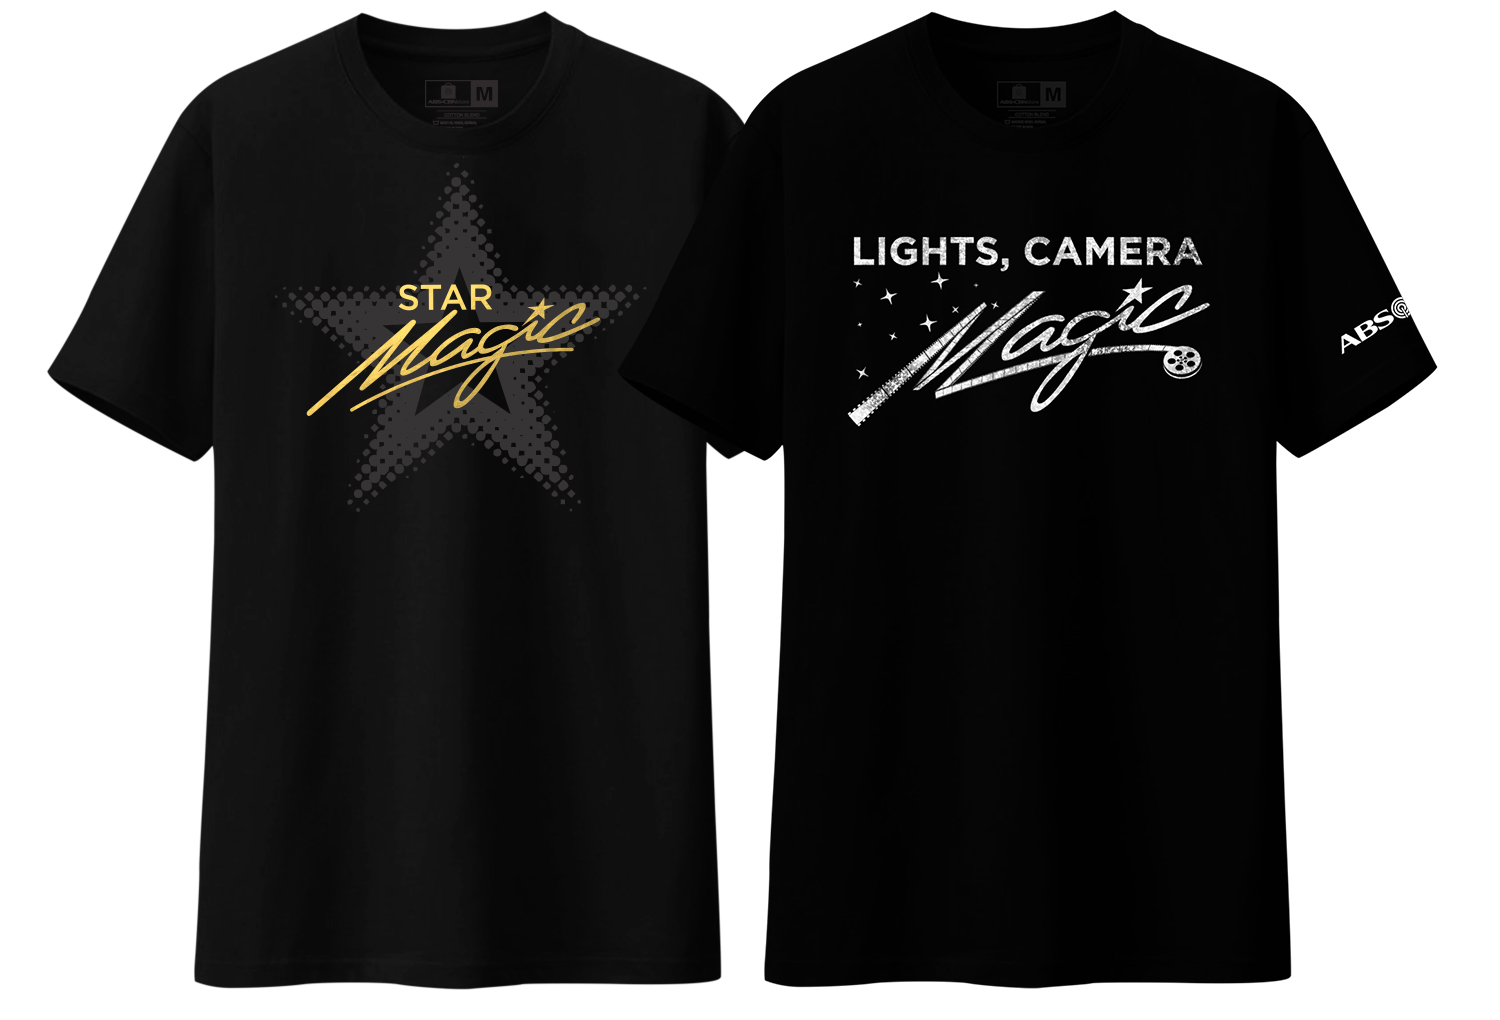 Star Magic Shirts